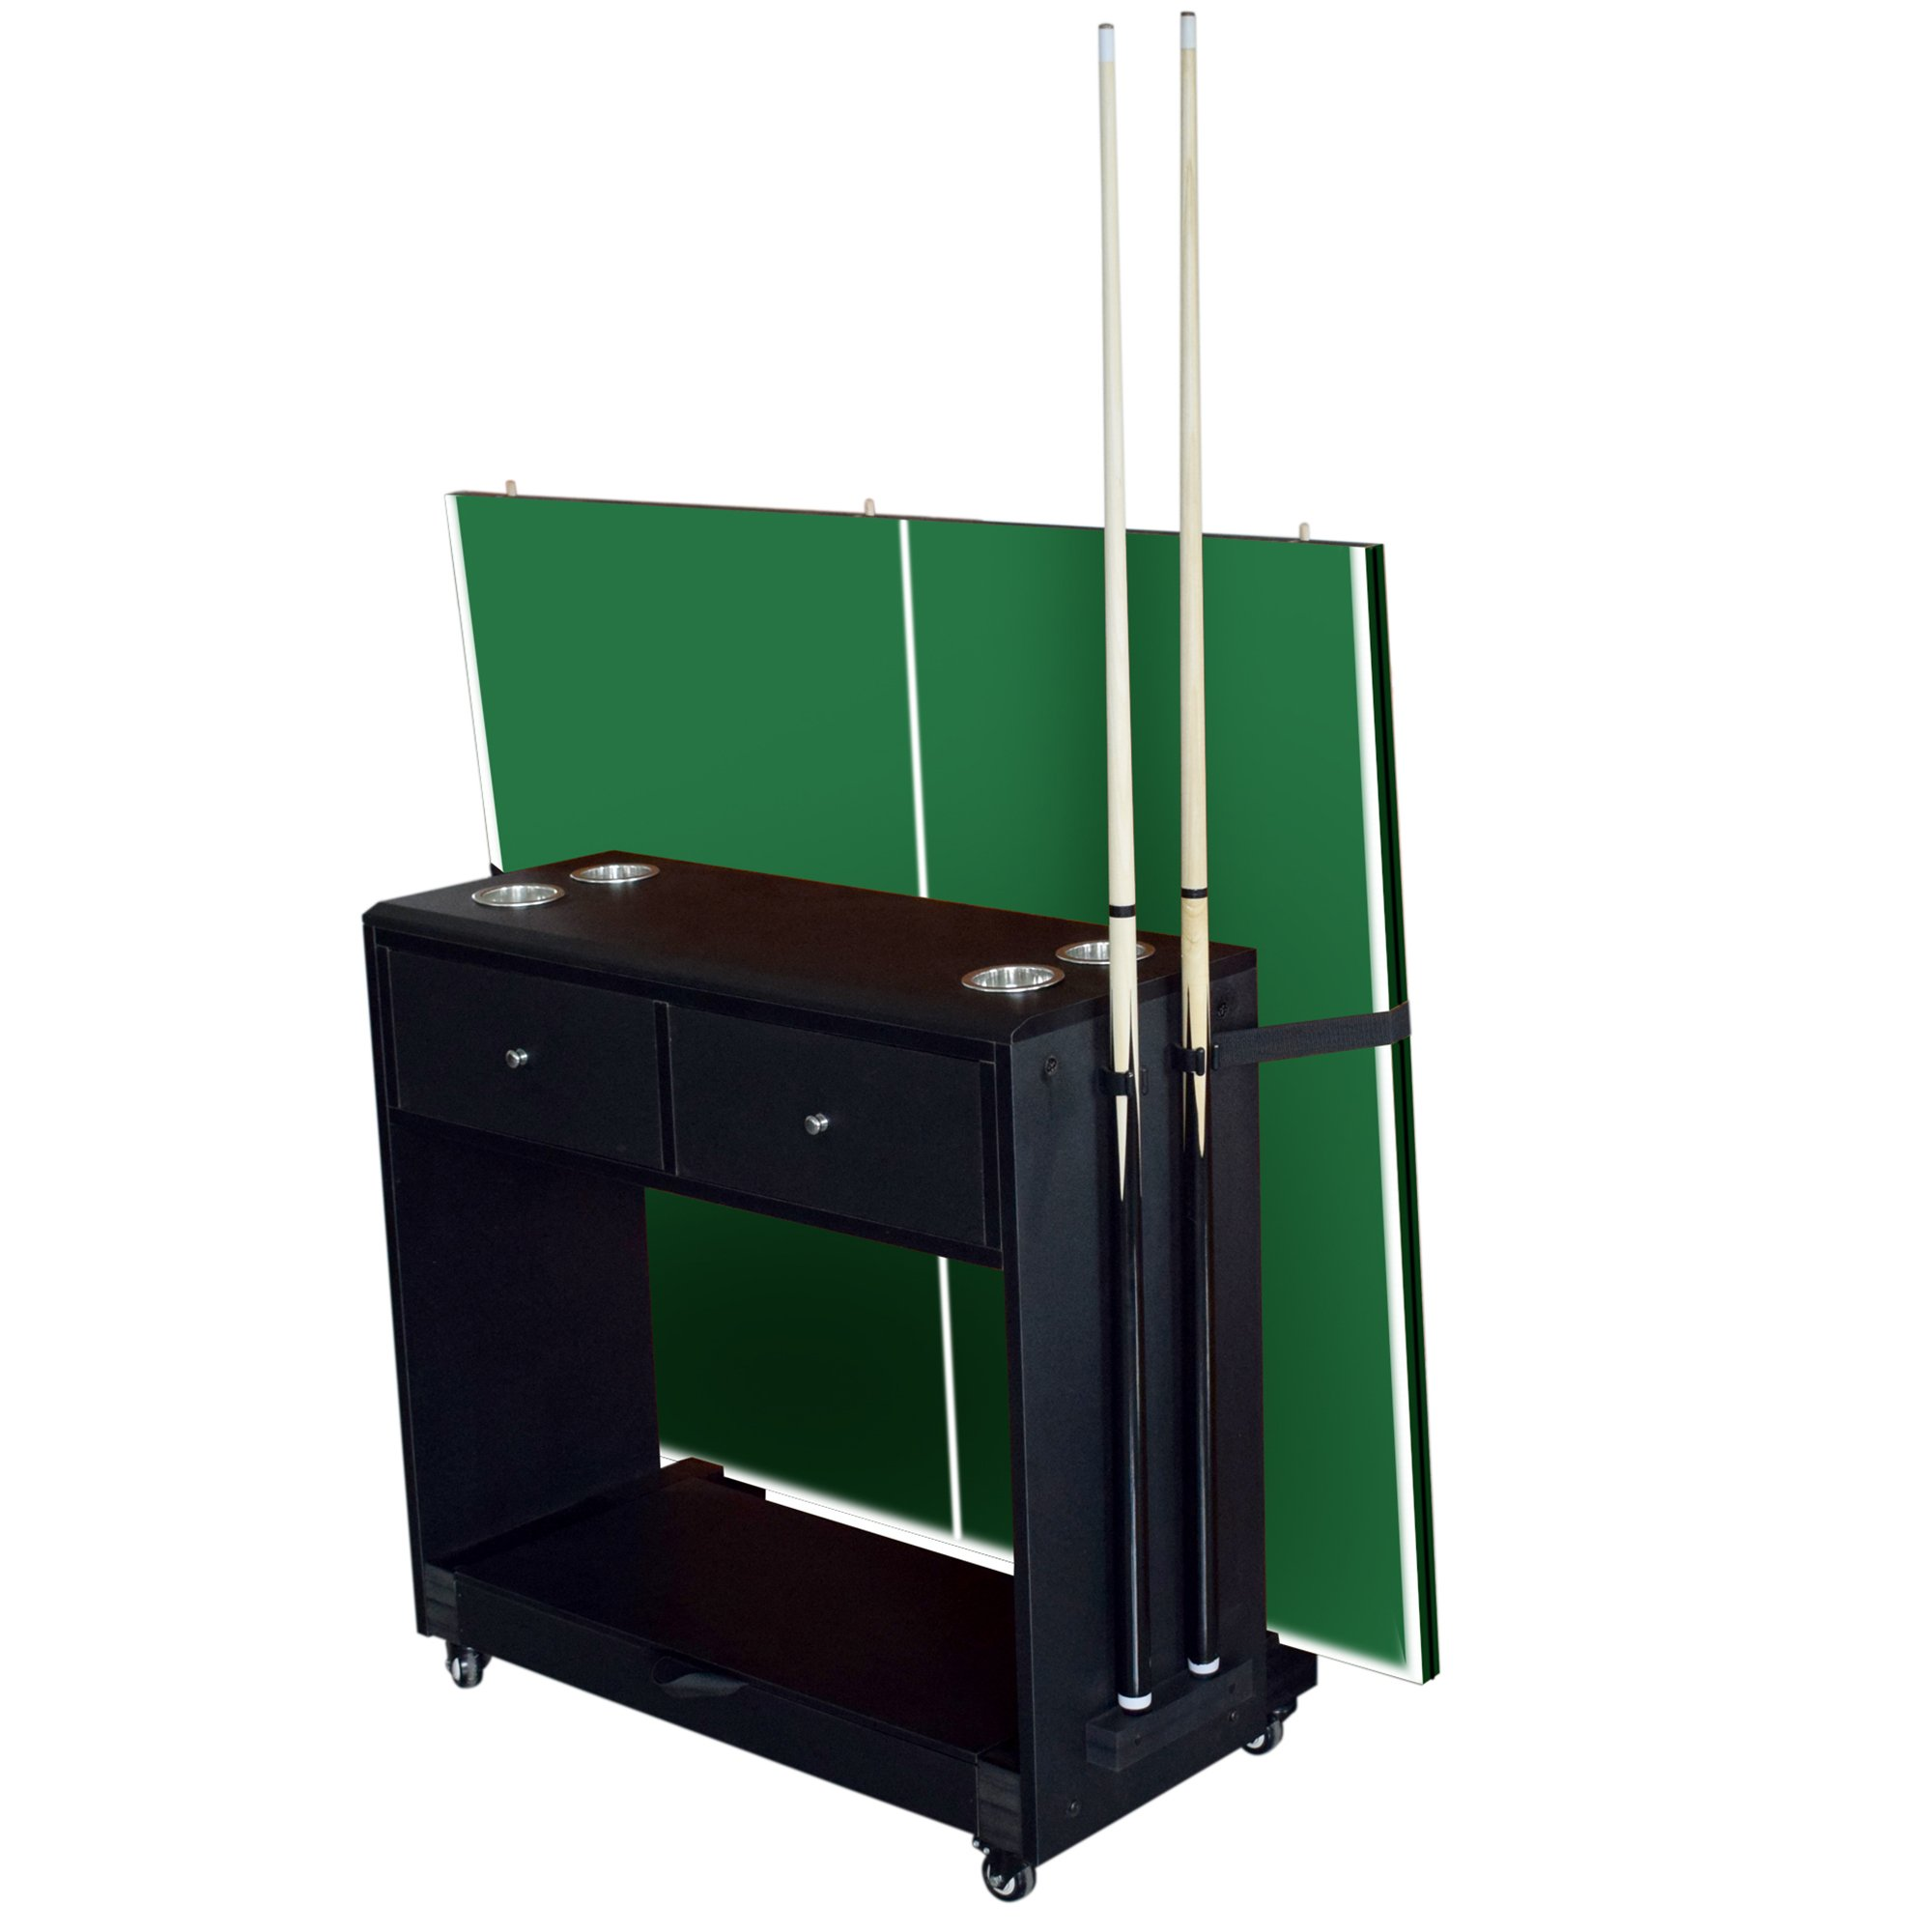 Hathaway Multi-Purpose Game Room Caddy for Billiards, Table Tennis, Air Hockey and Shuffleboard, Black by Hathaway